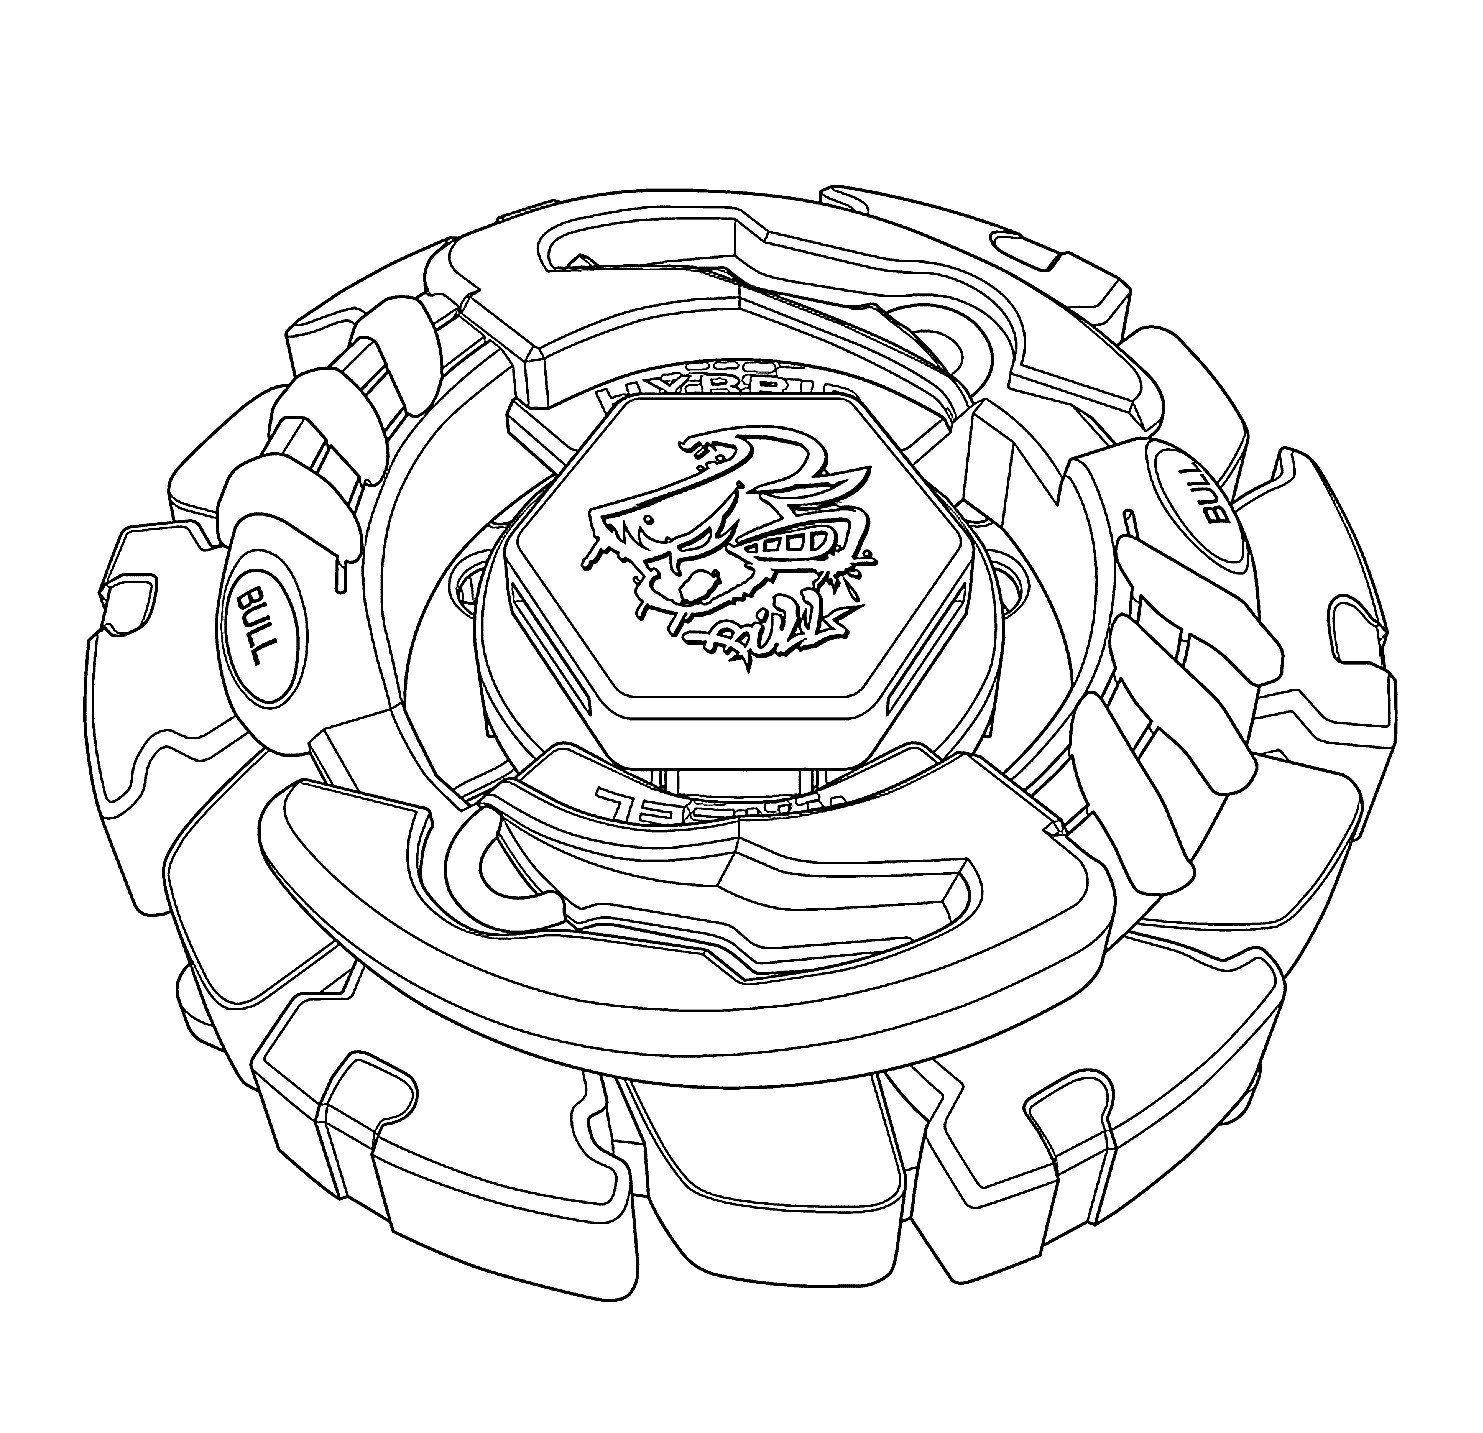 New York Yankees Coloring Unique Yankee Coloring Pages Coloring Pages For Children Pokemon Coloring Pages Printable Coloring Pages Coloring Pages